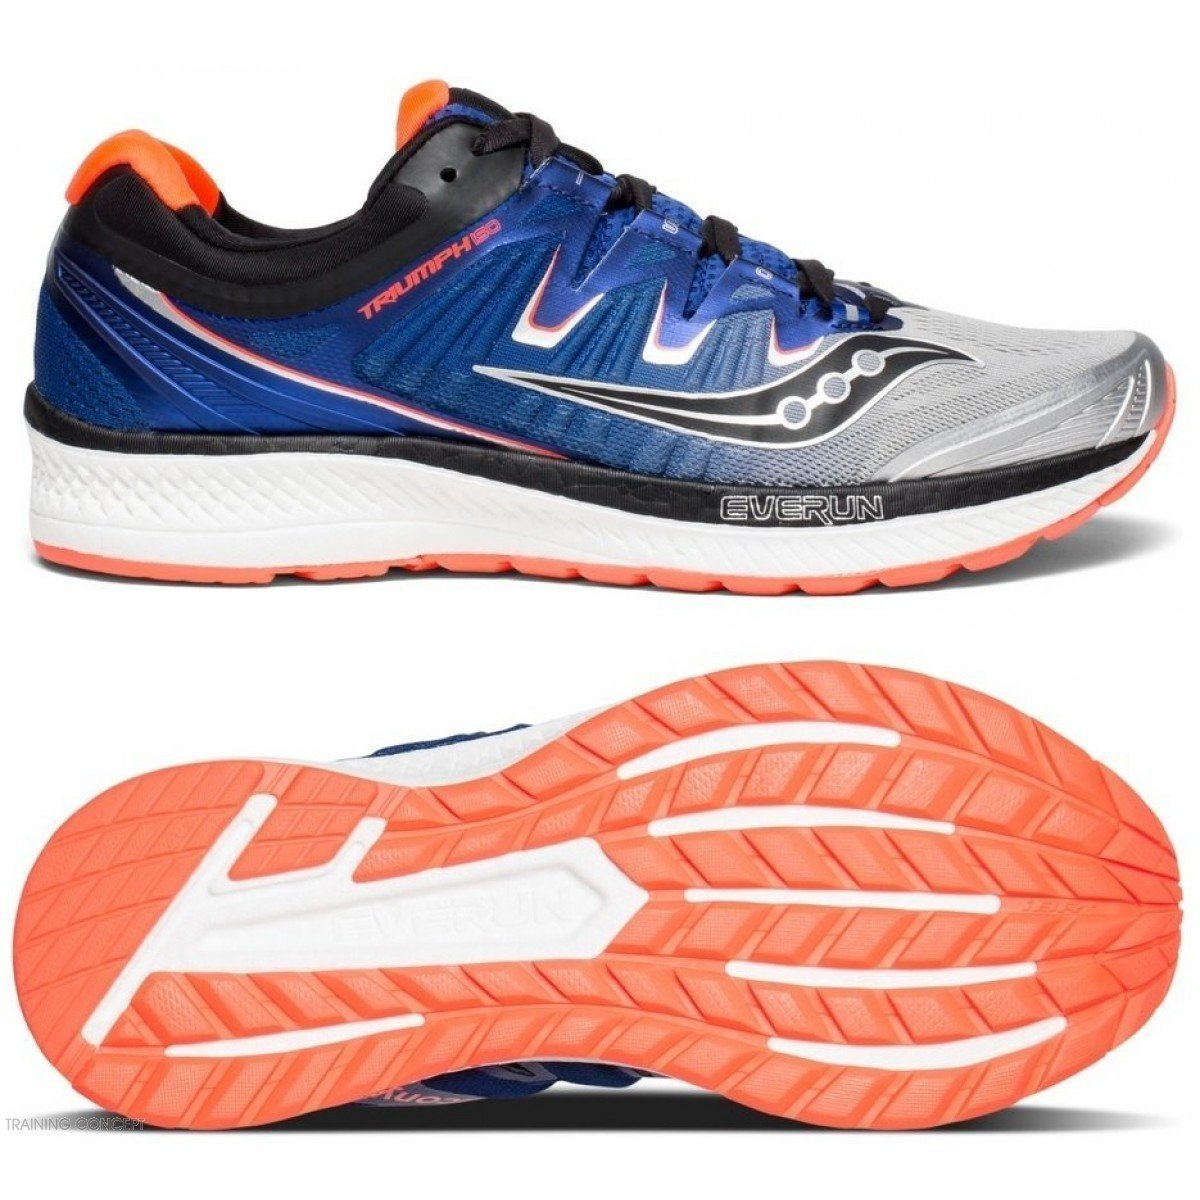 Pied Saucony Running Tampering Chaussures Trail De Qbzw8c Course rtrwqxFp